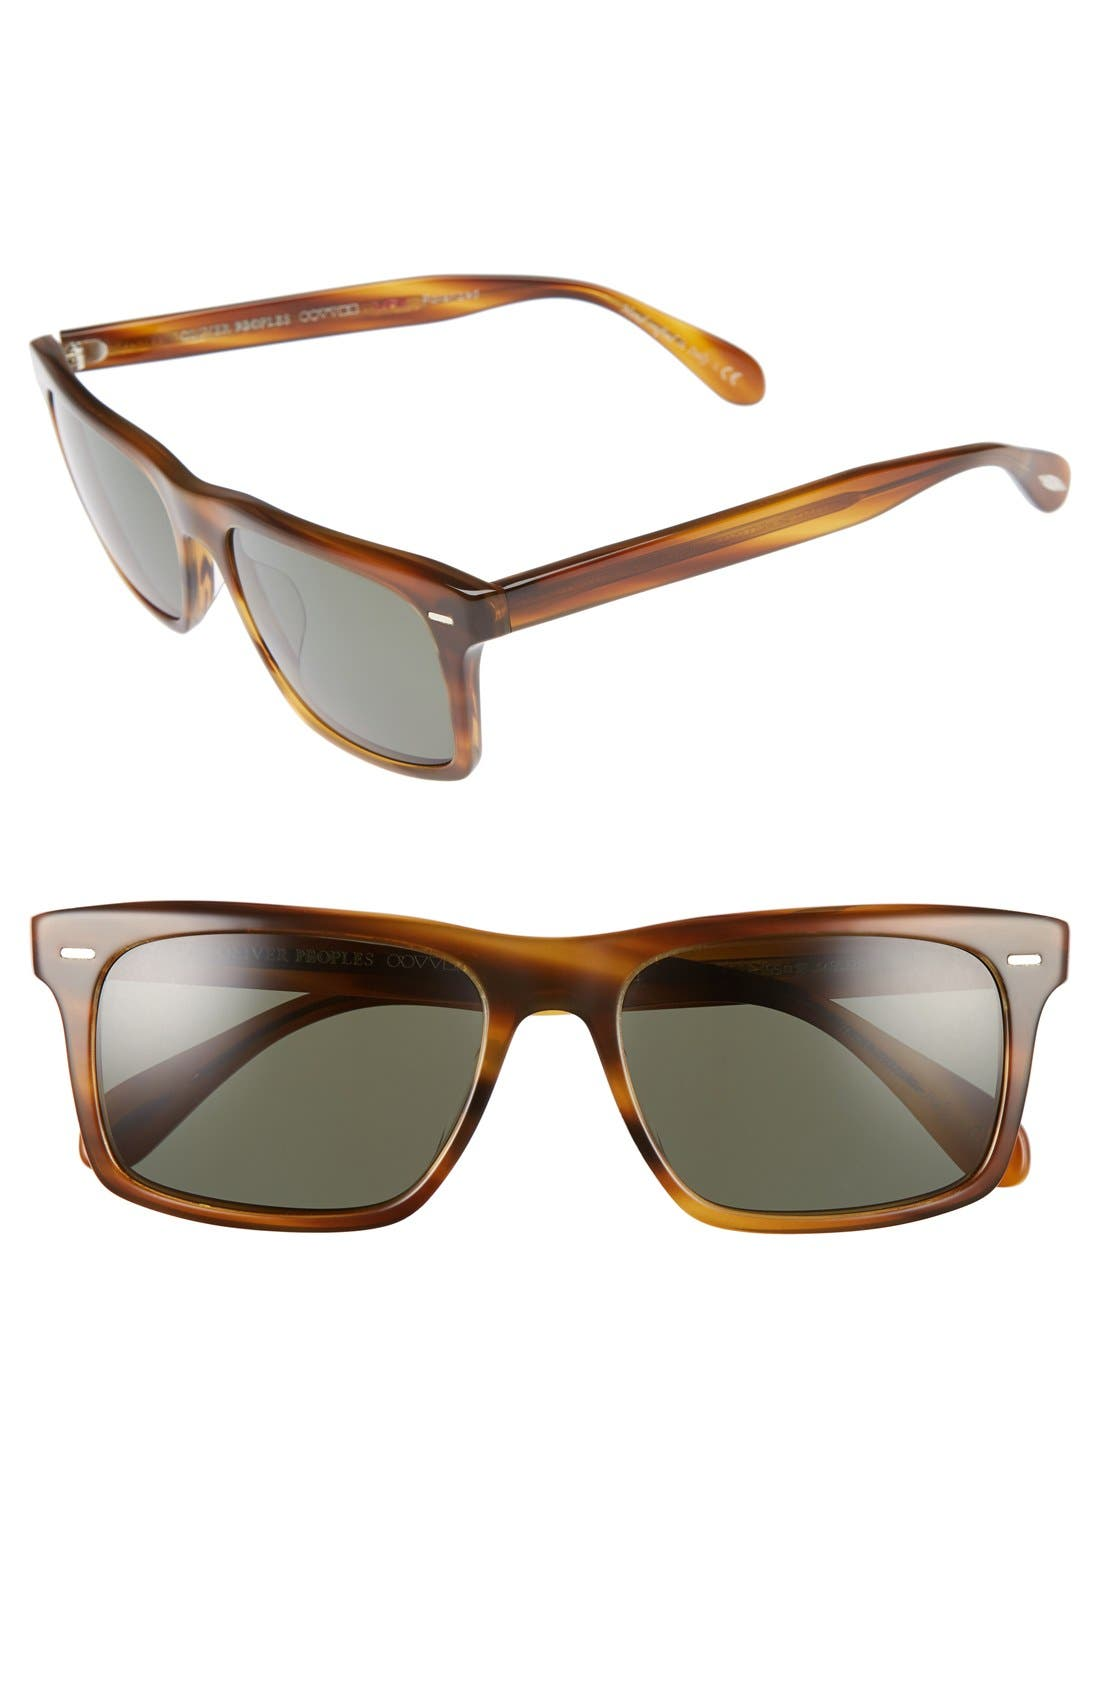 Brodsky 55mm Polarized Sunglasses,                             Main thumbnail 1, color,                             Brown